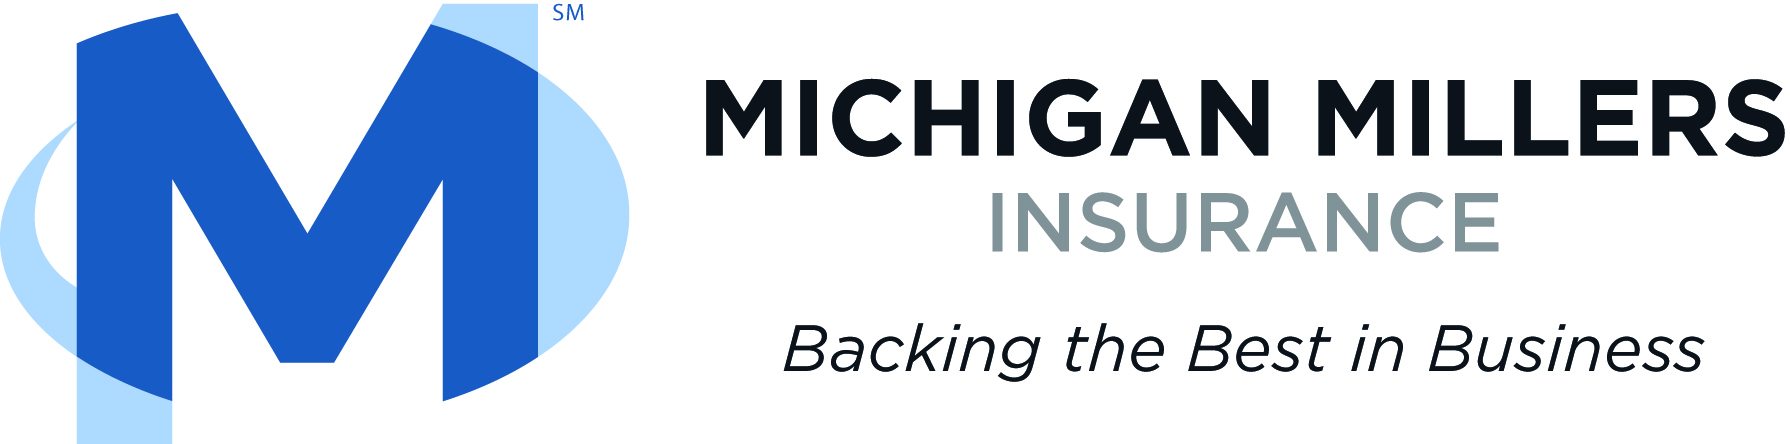 Michigan Millers Mutual Insurance Company